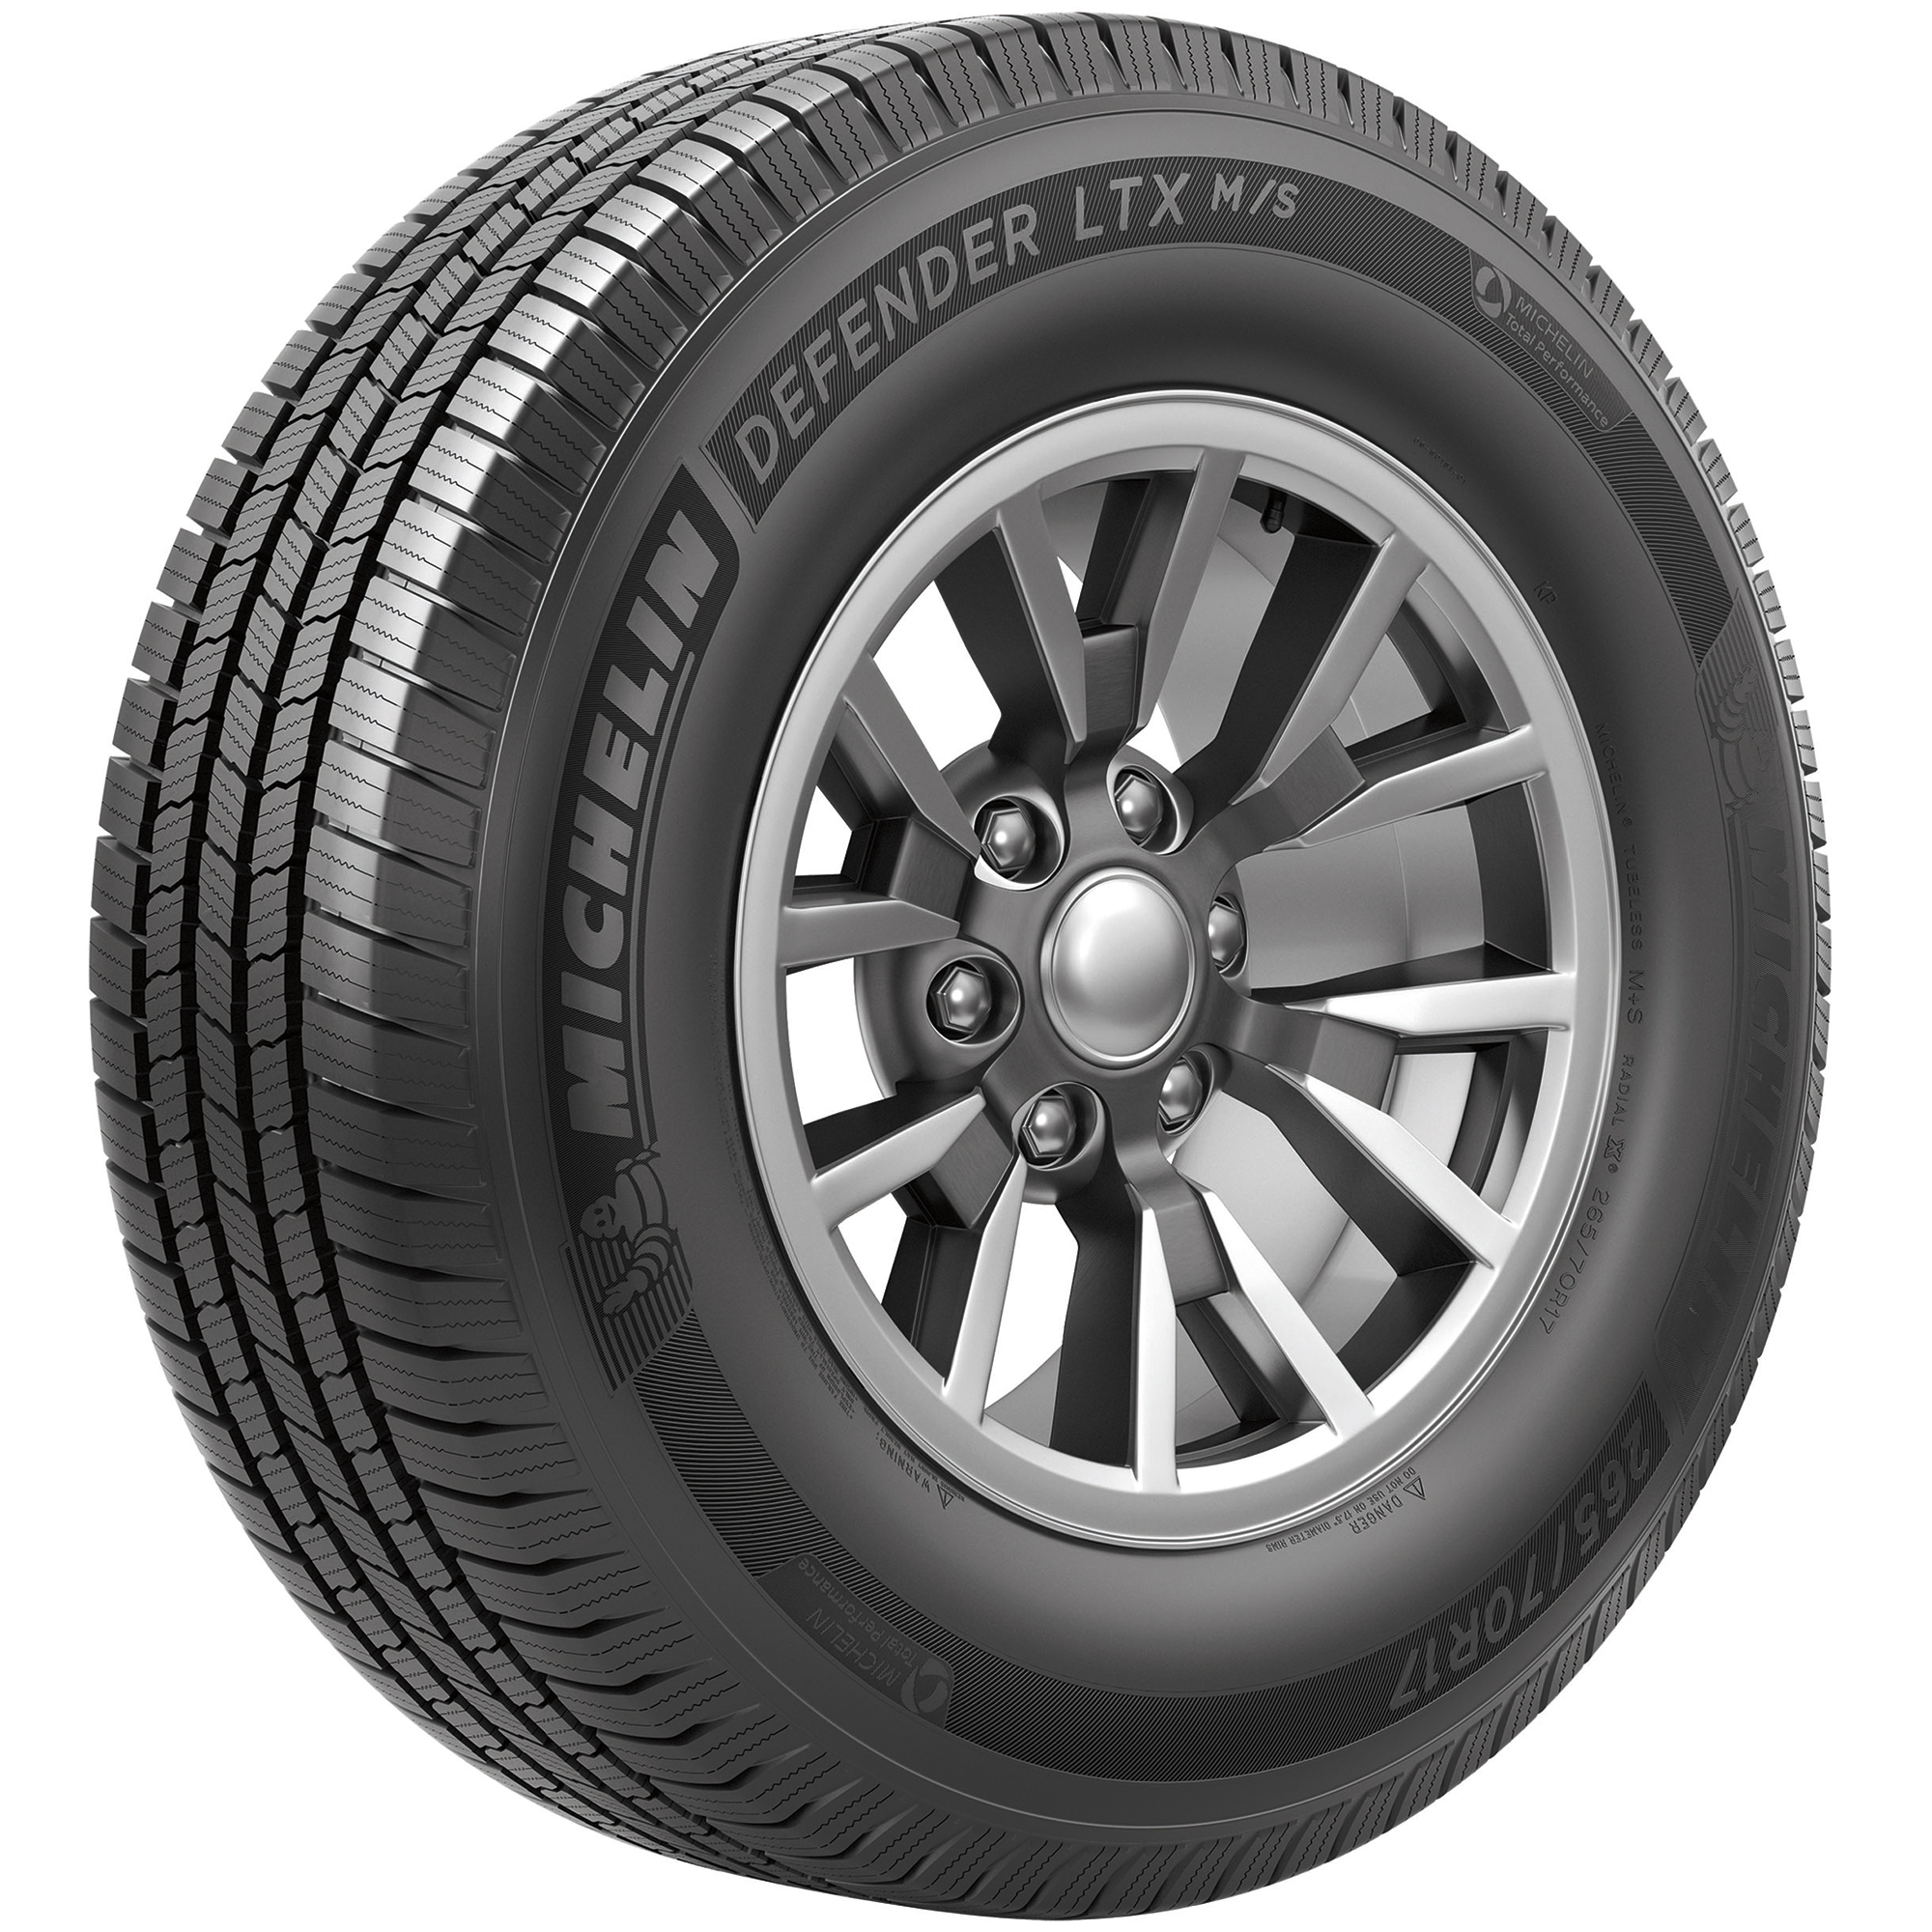 Michelin Defender Ltx Ms Highway Tire 26565r18 114t